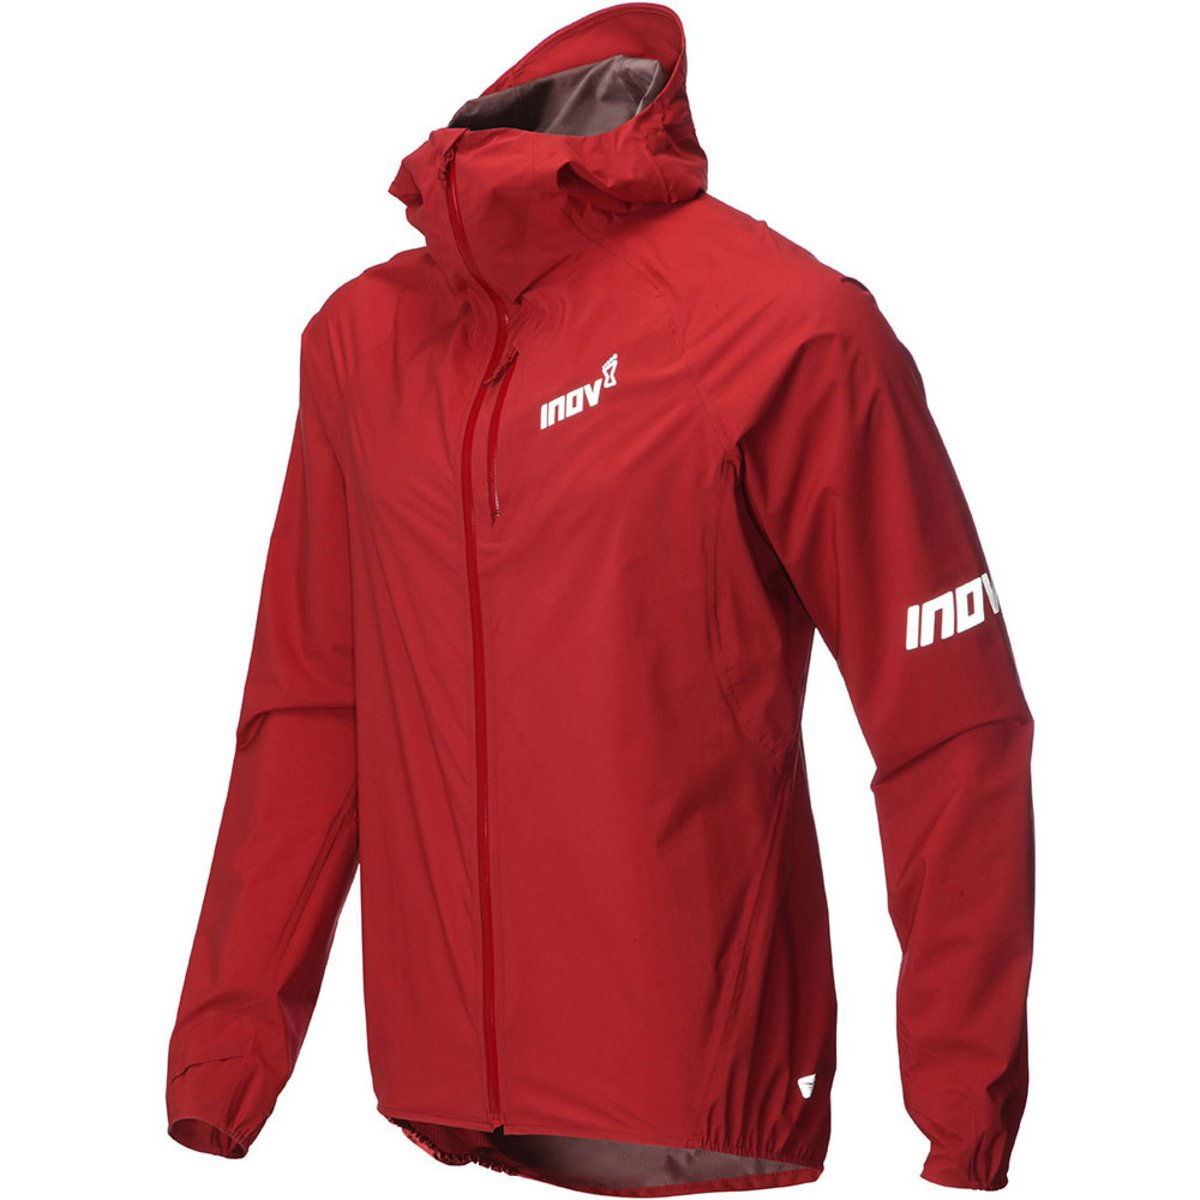 Inov-8 Men's Pertex Shield Full Zip Stormshell Jacket 0